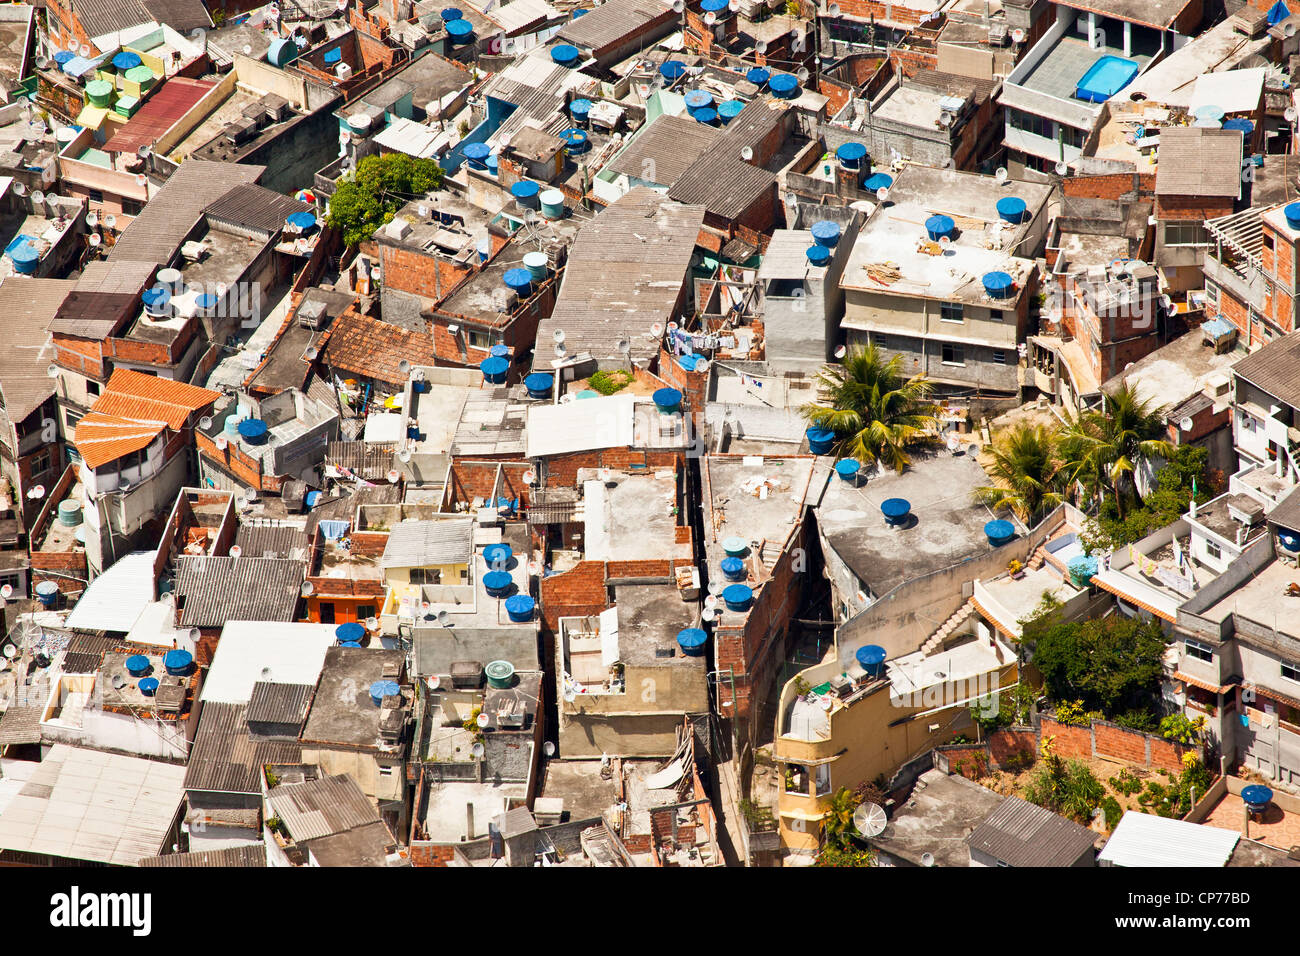 Dwelling conditions Favela do Vidigal Rio de Janeiro Brazil Lots domestic satellite TV receiving dishes & water - Stock Image